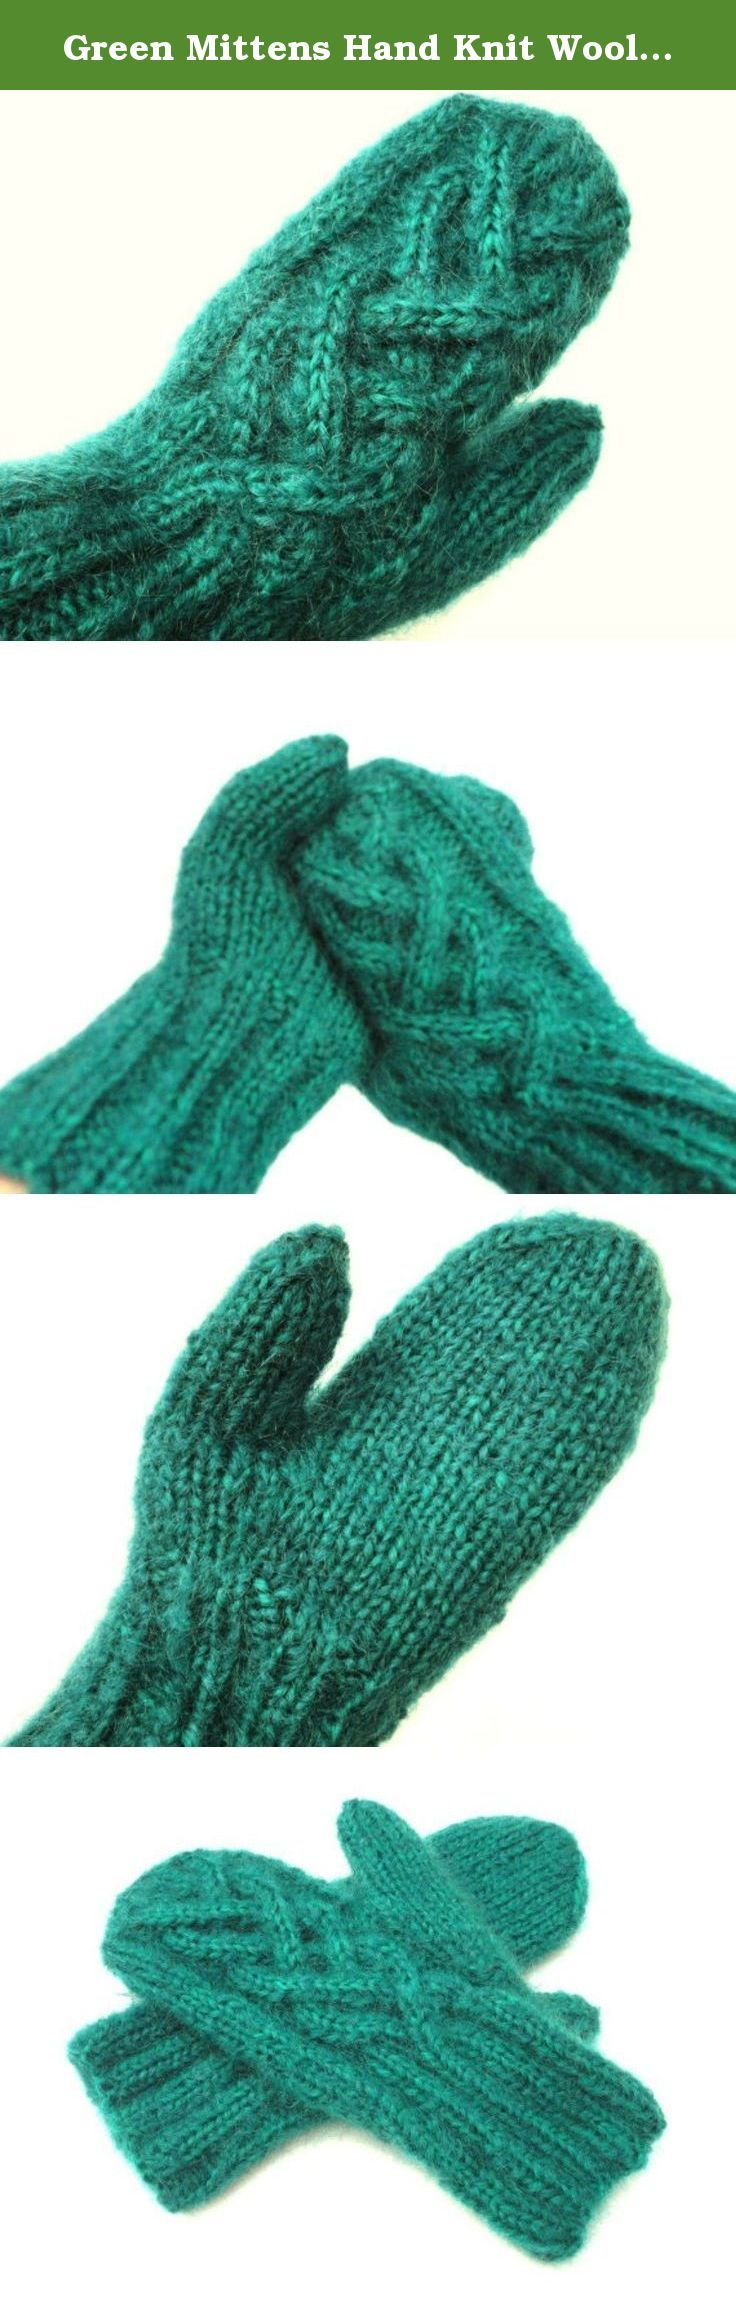 Green Mittens Hand Knit Wool and Mohair with Celtic Twist Cable. These hand knit mittens are one size and will fit most women's hands. They measure approximately 7-inches around at the widest part of the hand. From the ribbed cuff to the top, they are approximately 9 1/2-inches. They are knitted and ready to ship.